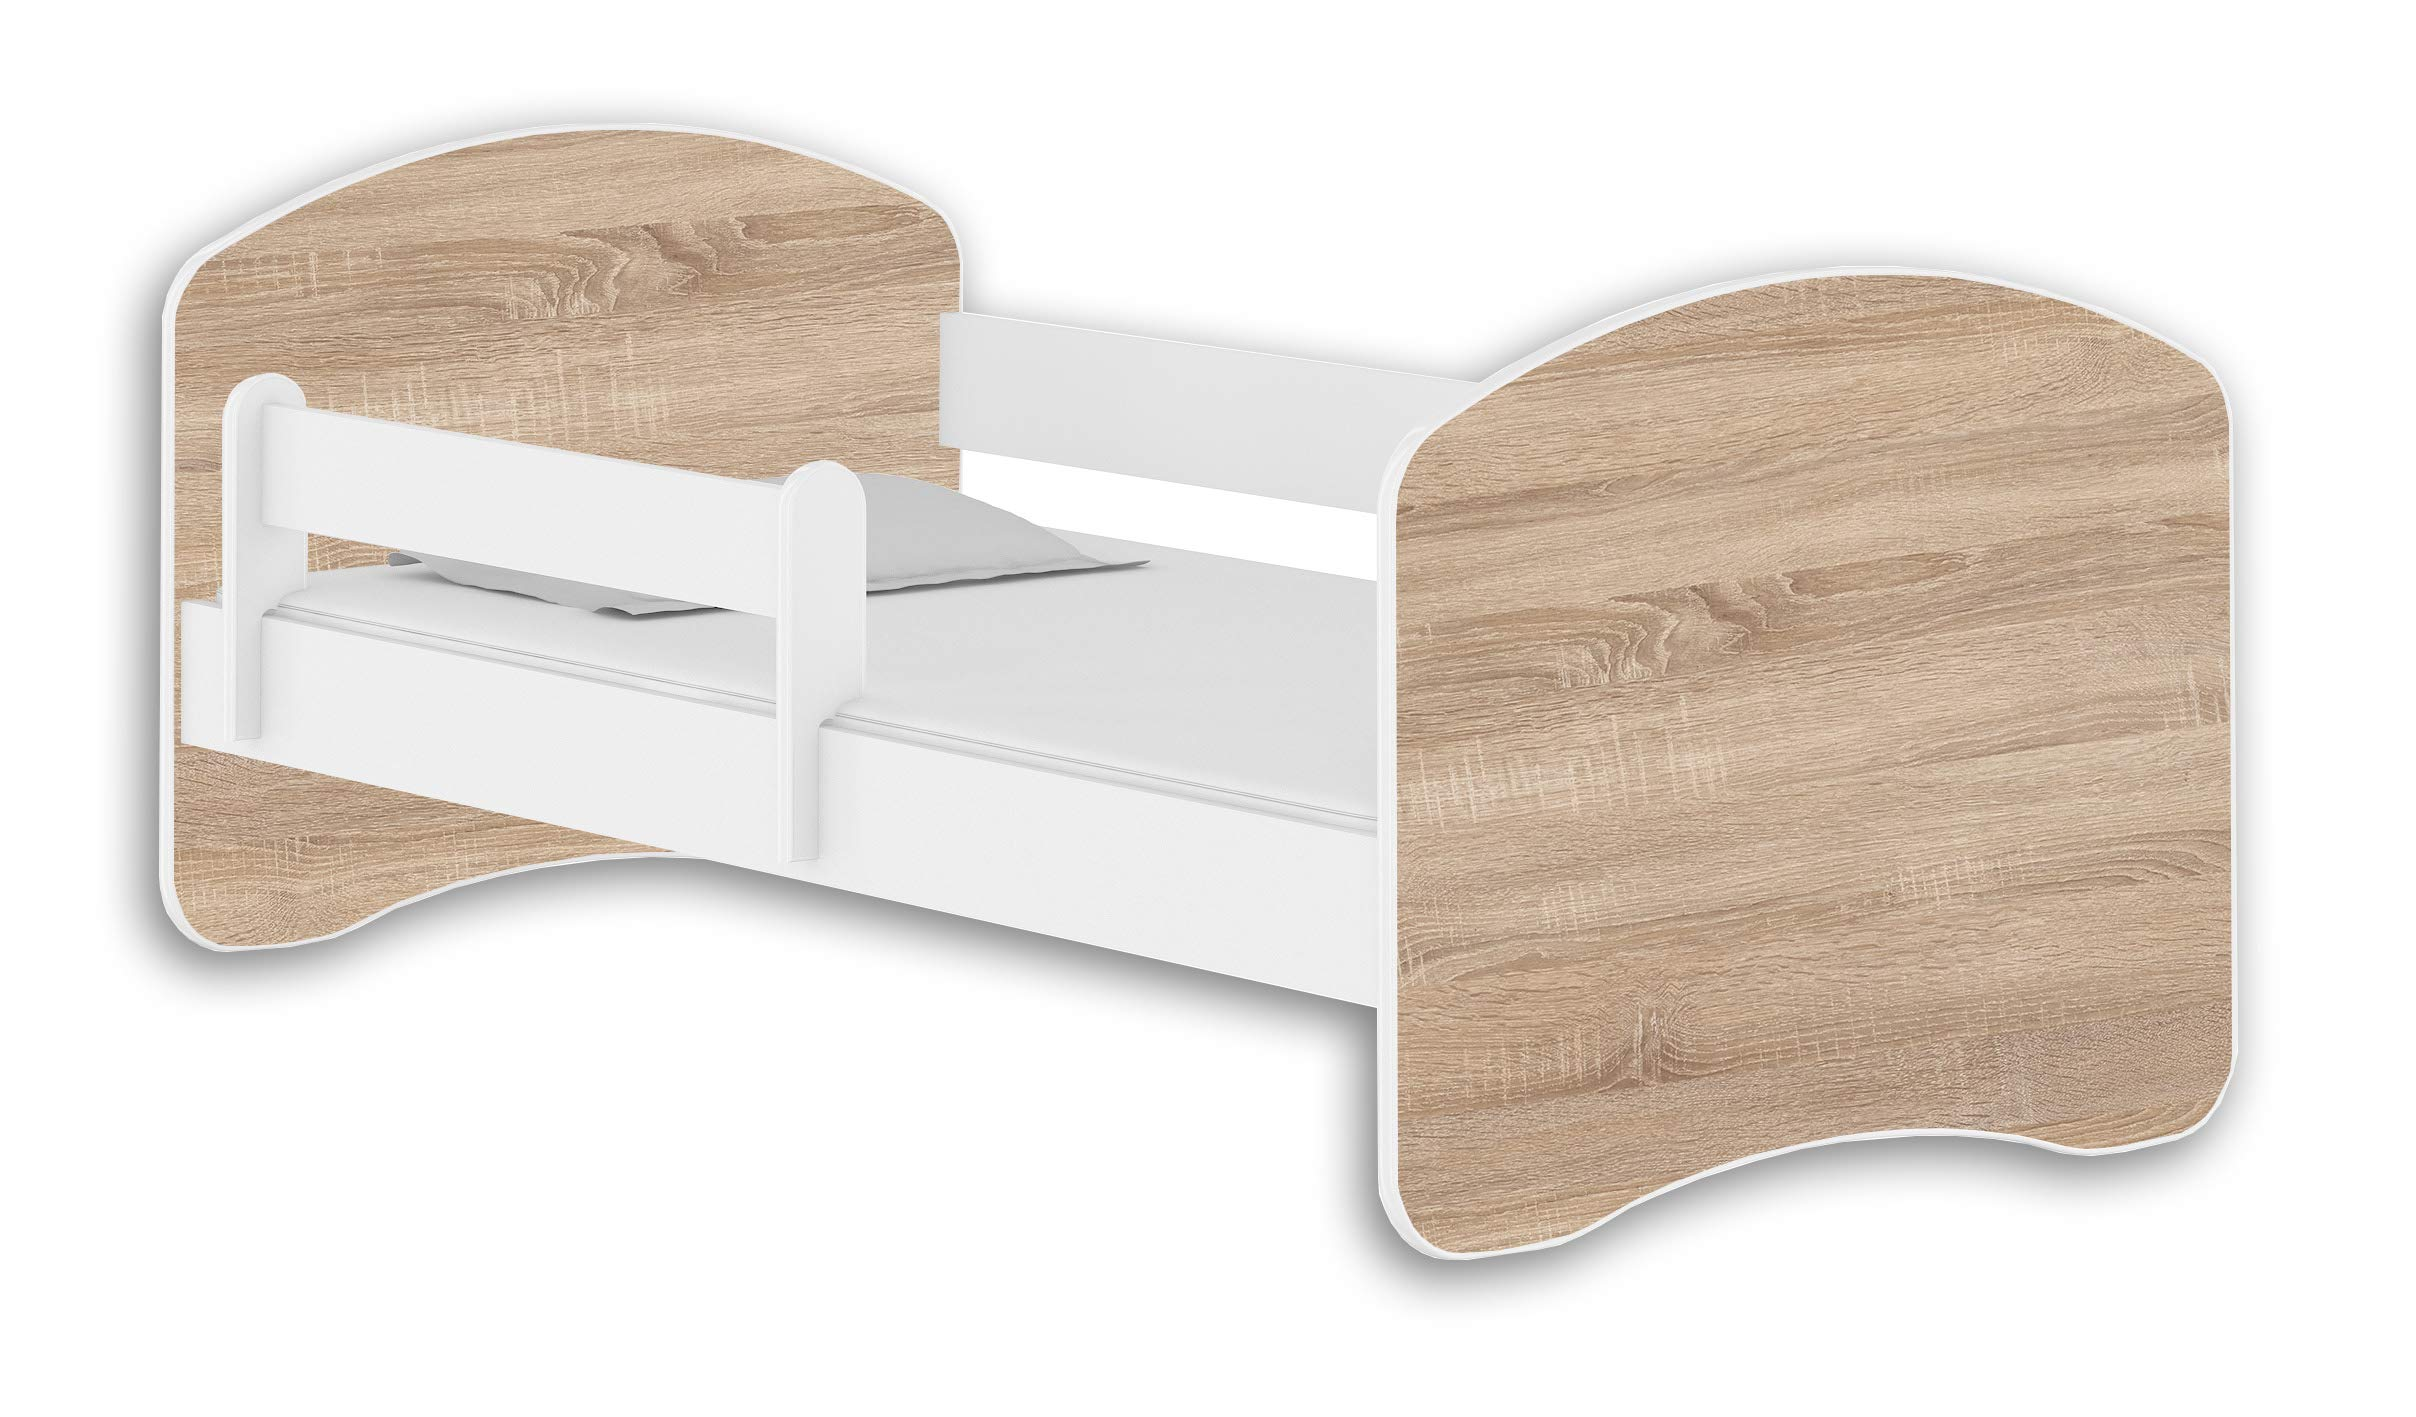 ACMA II TODDLER CHILDREN KIDS BED + FREE MATTRESS DRAWER WHITE 140x70 160x80 180x80 (140x70 cm, White - Sonoma Wood) ACMA Dimensions : 144 cm x 75 cm x 62 cm For safety all the edges of the bed are covered with a special PCV material The bed is proper for kids up to 100 kg 1